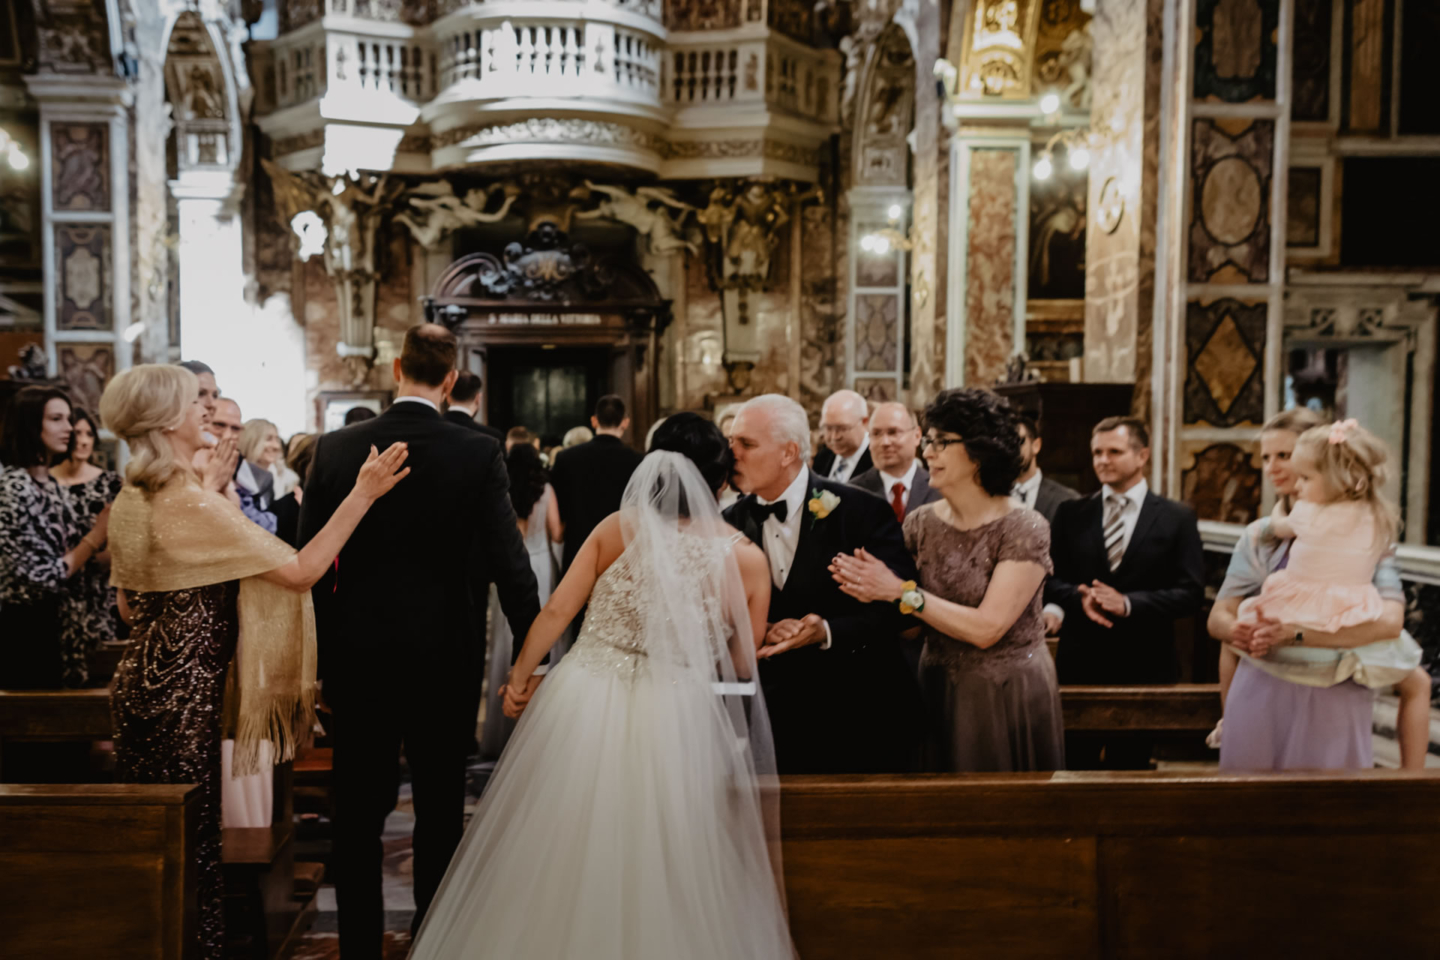 A breath-taking wedding in Rome, the eternal city :: Luxury wedding photography - 22